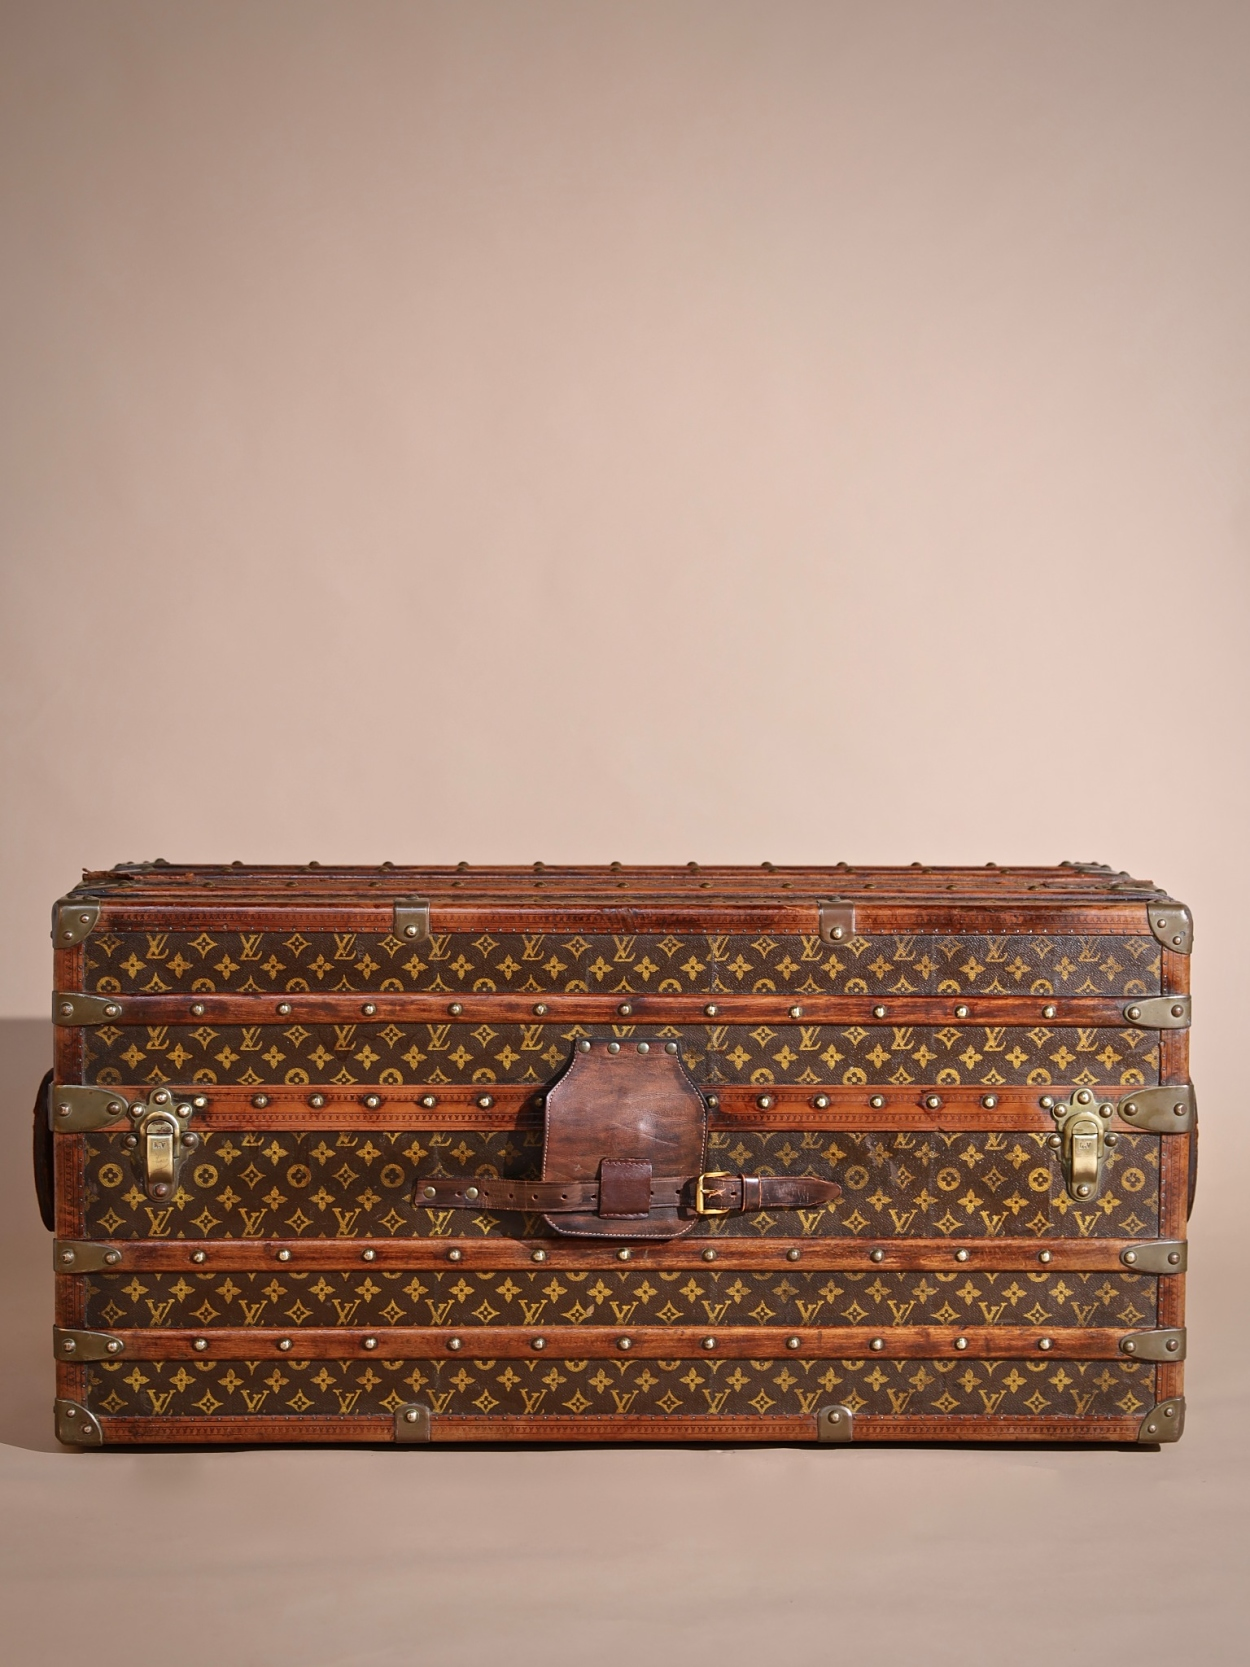 the-well-traveled-trunk-louis-vuitton-thumbnail-product-5734-1